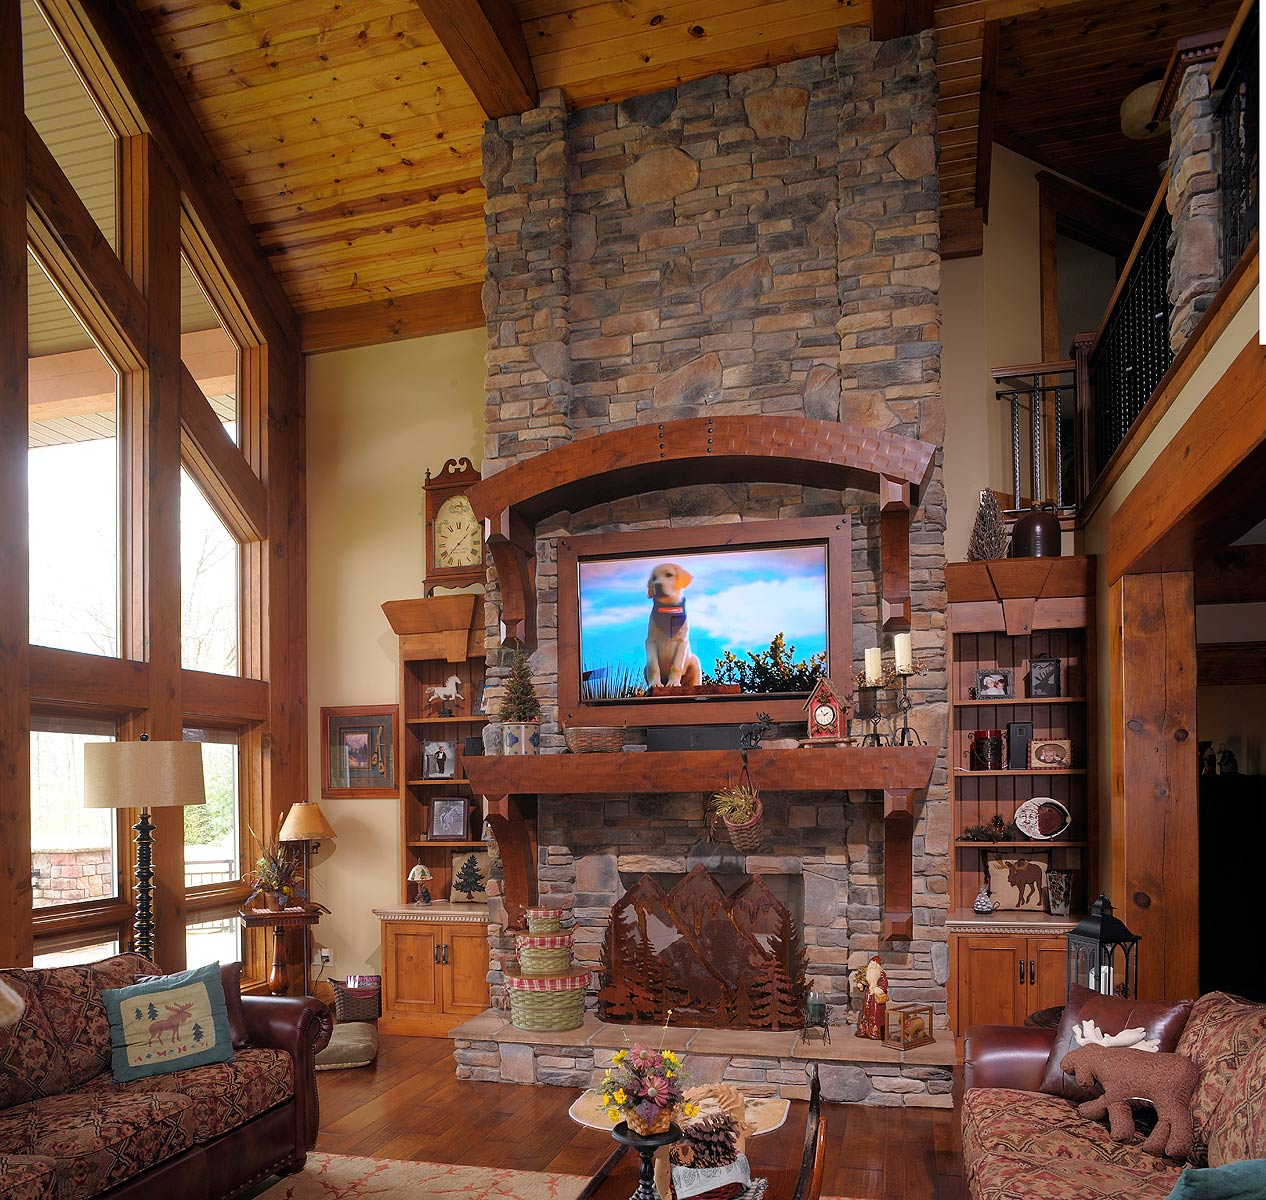 Mullet Cabinet Rustic Fireplace